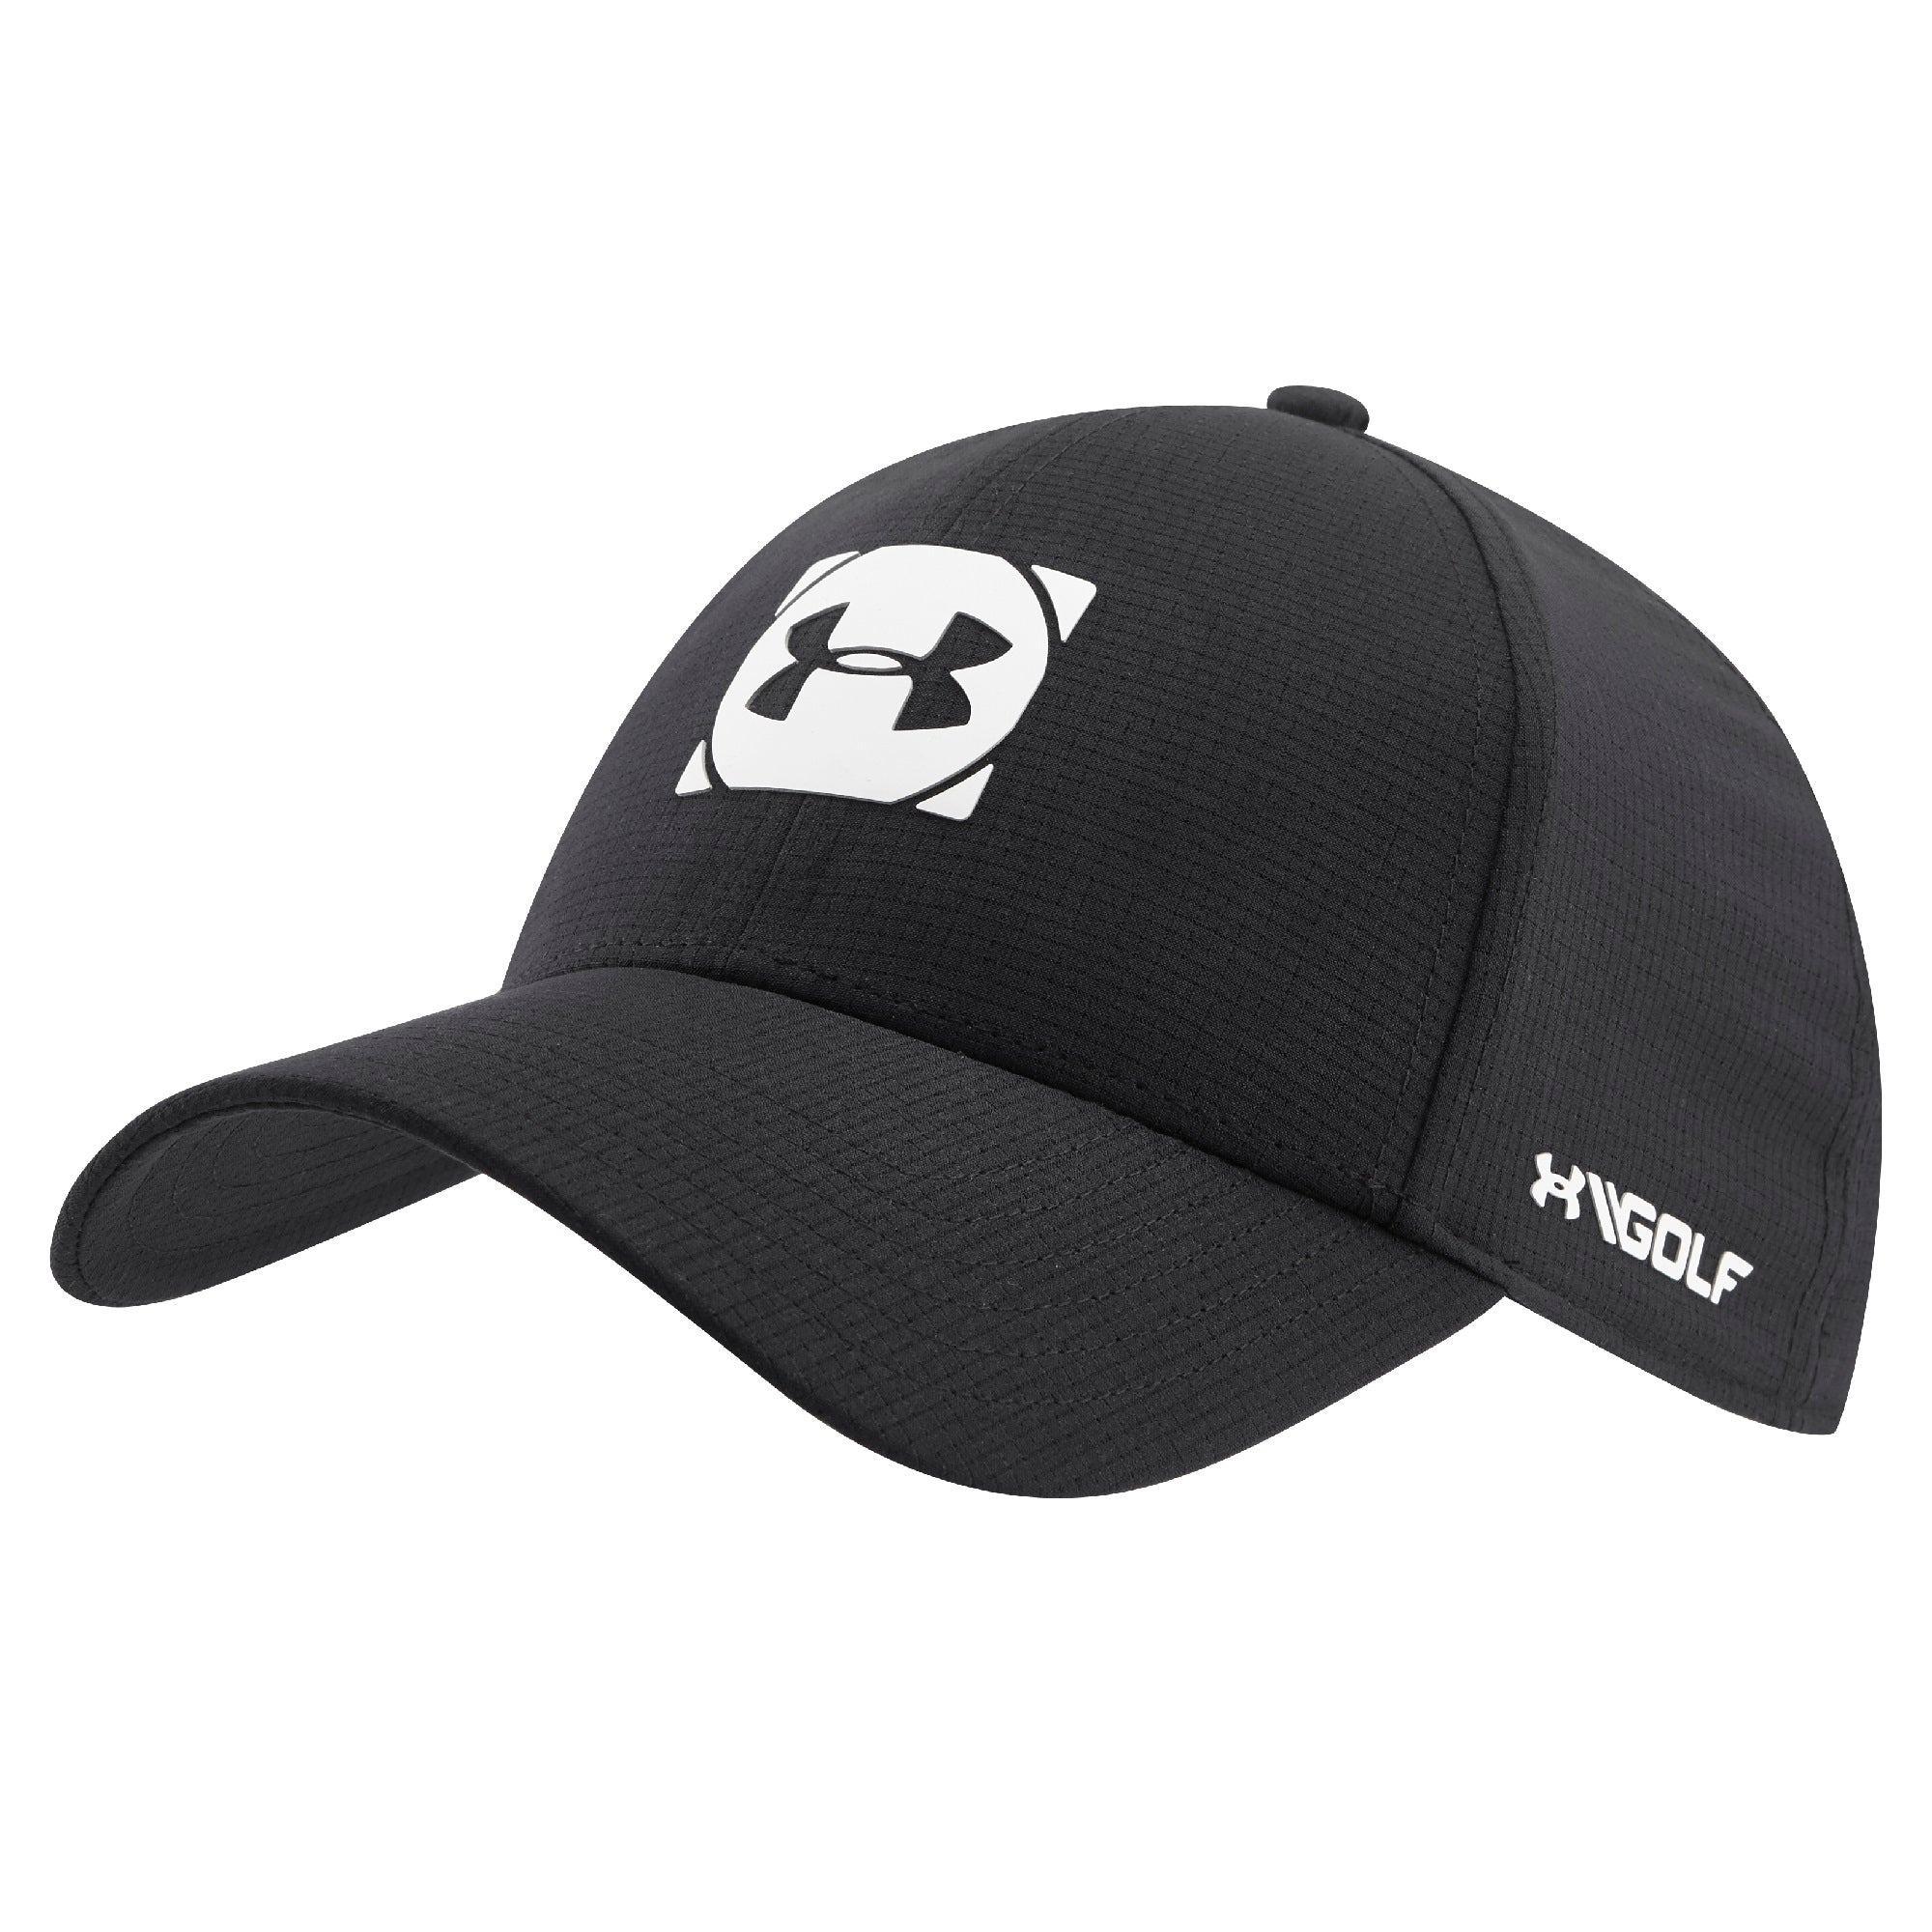 Under Armour Golf Official Tour Cap 1328667